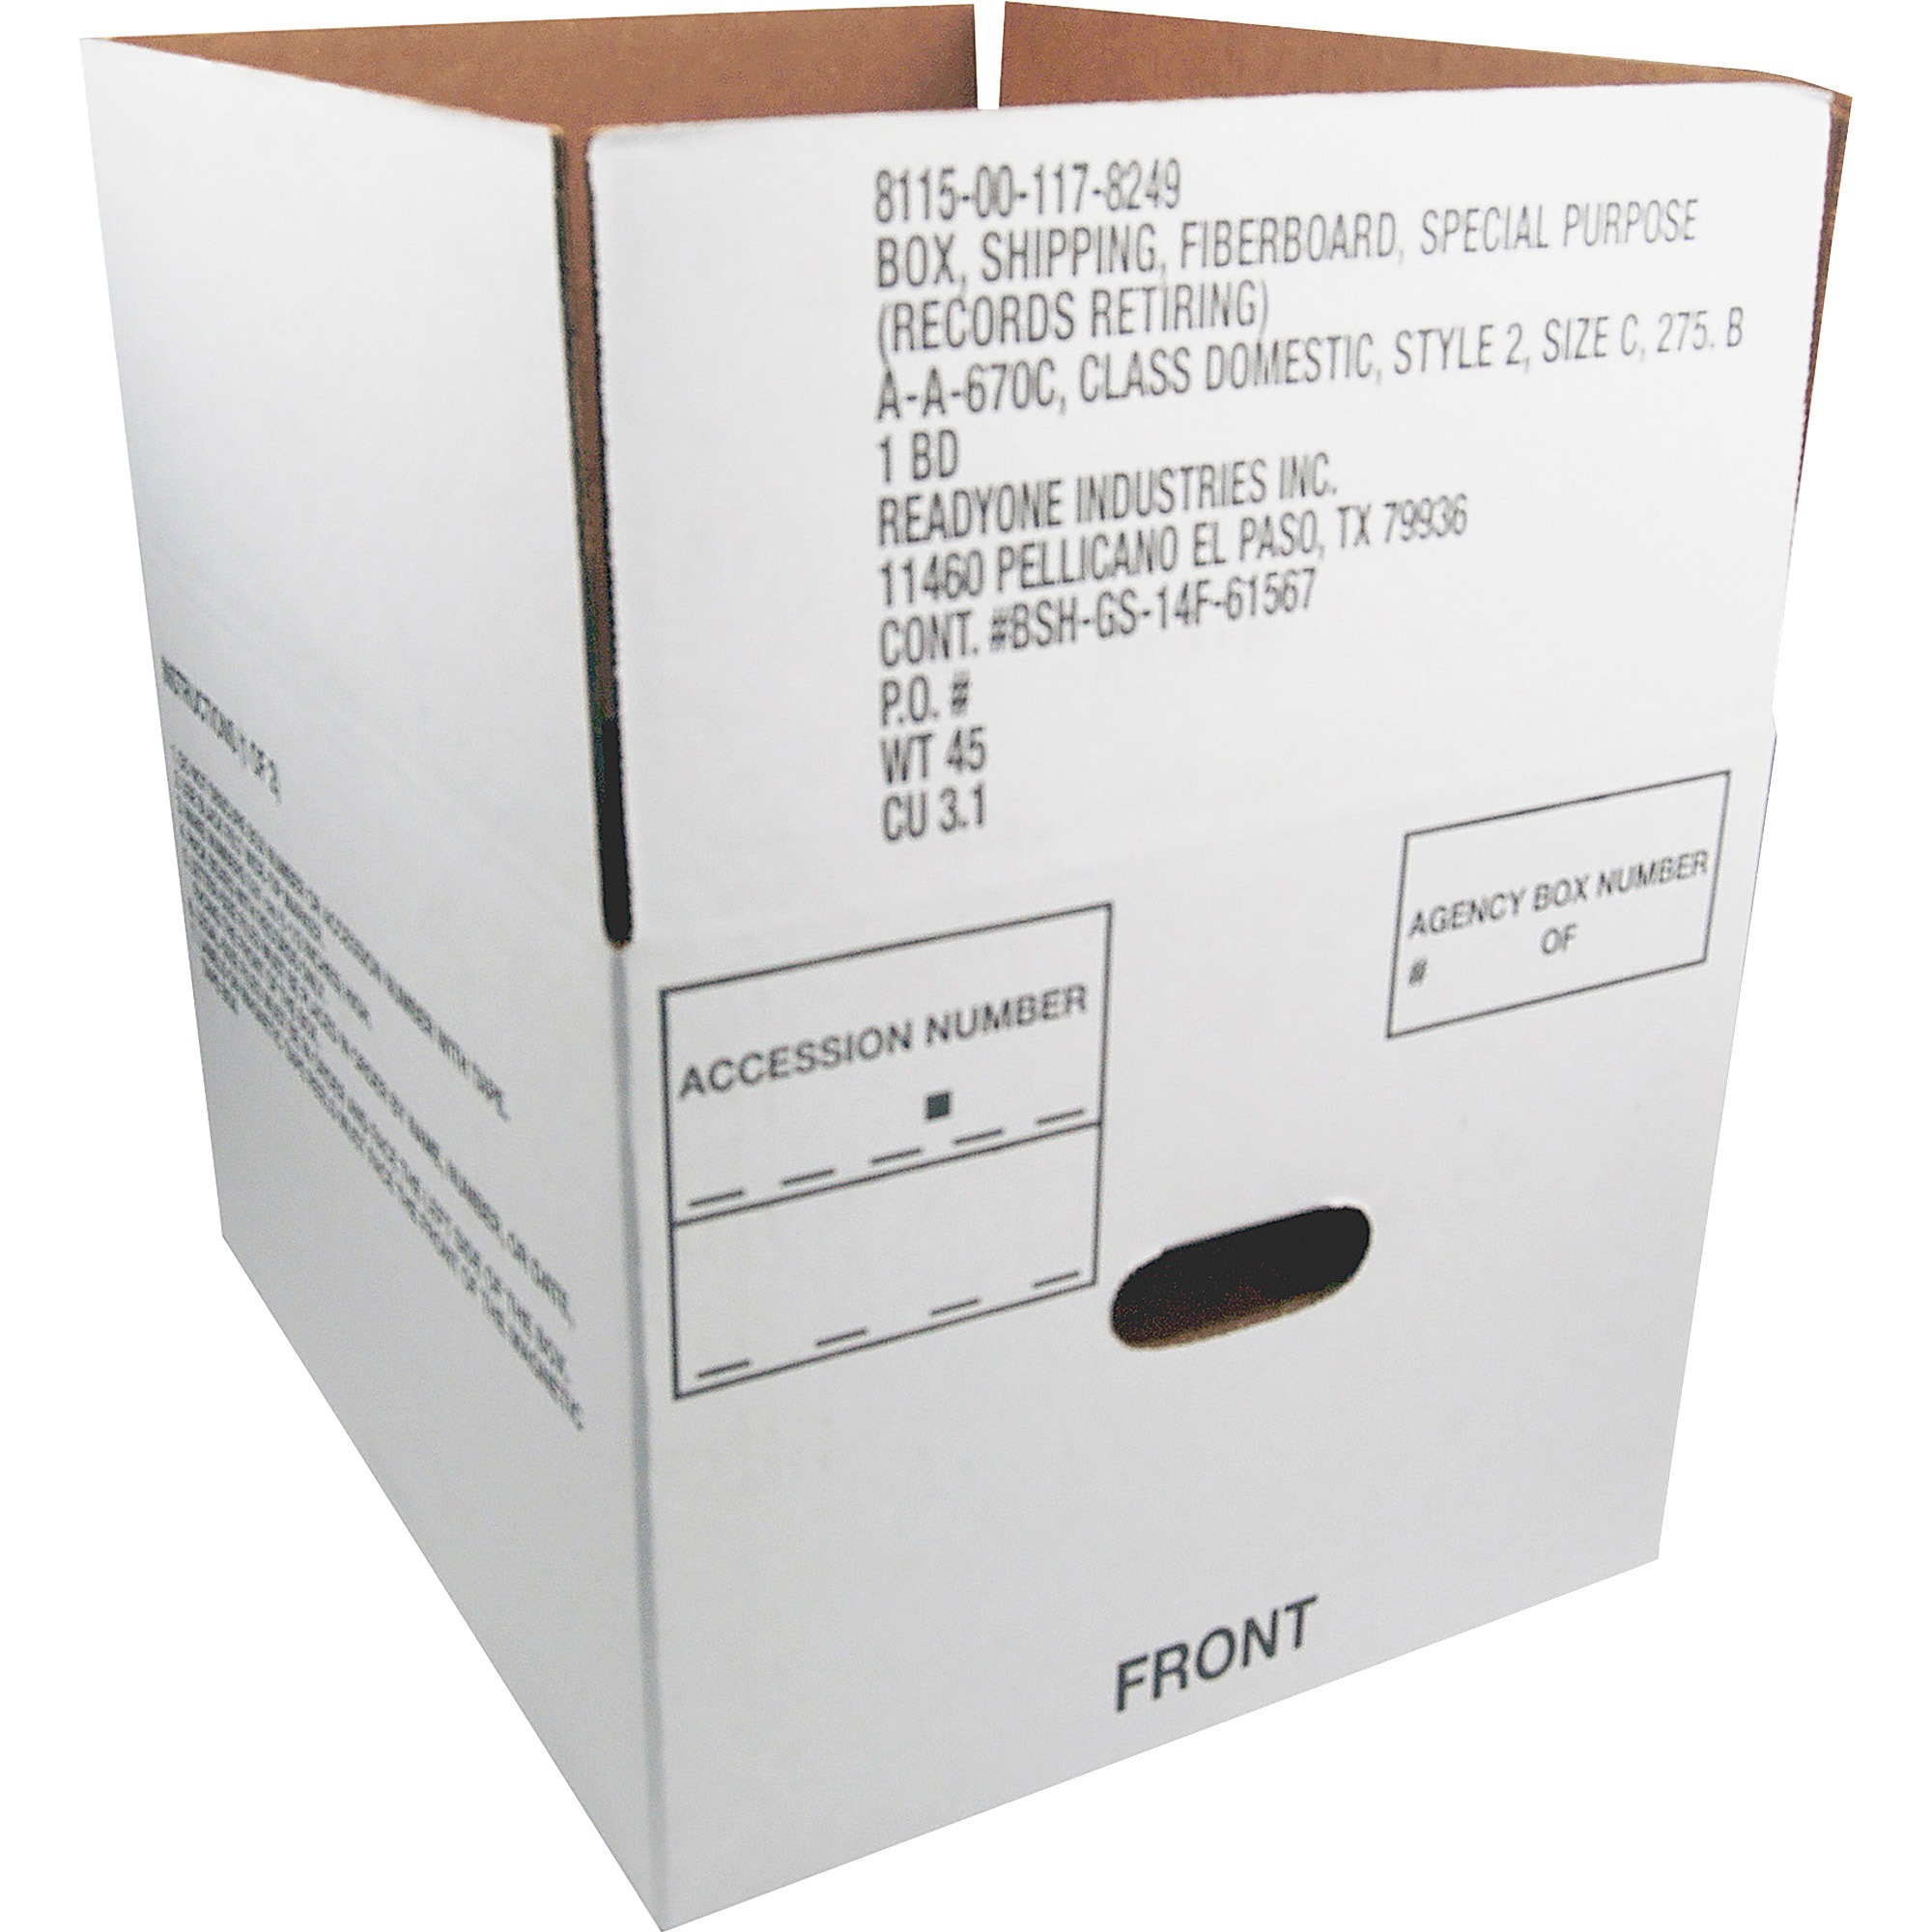 "Skilcraft Storage Box, Fiberboard, 12""x14-3/4""x9-1/2"", 25/CT, White 1178249"